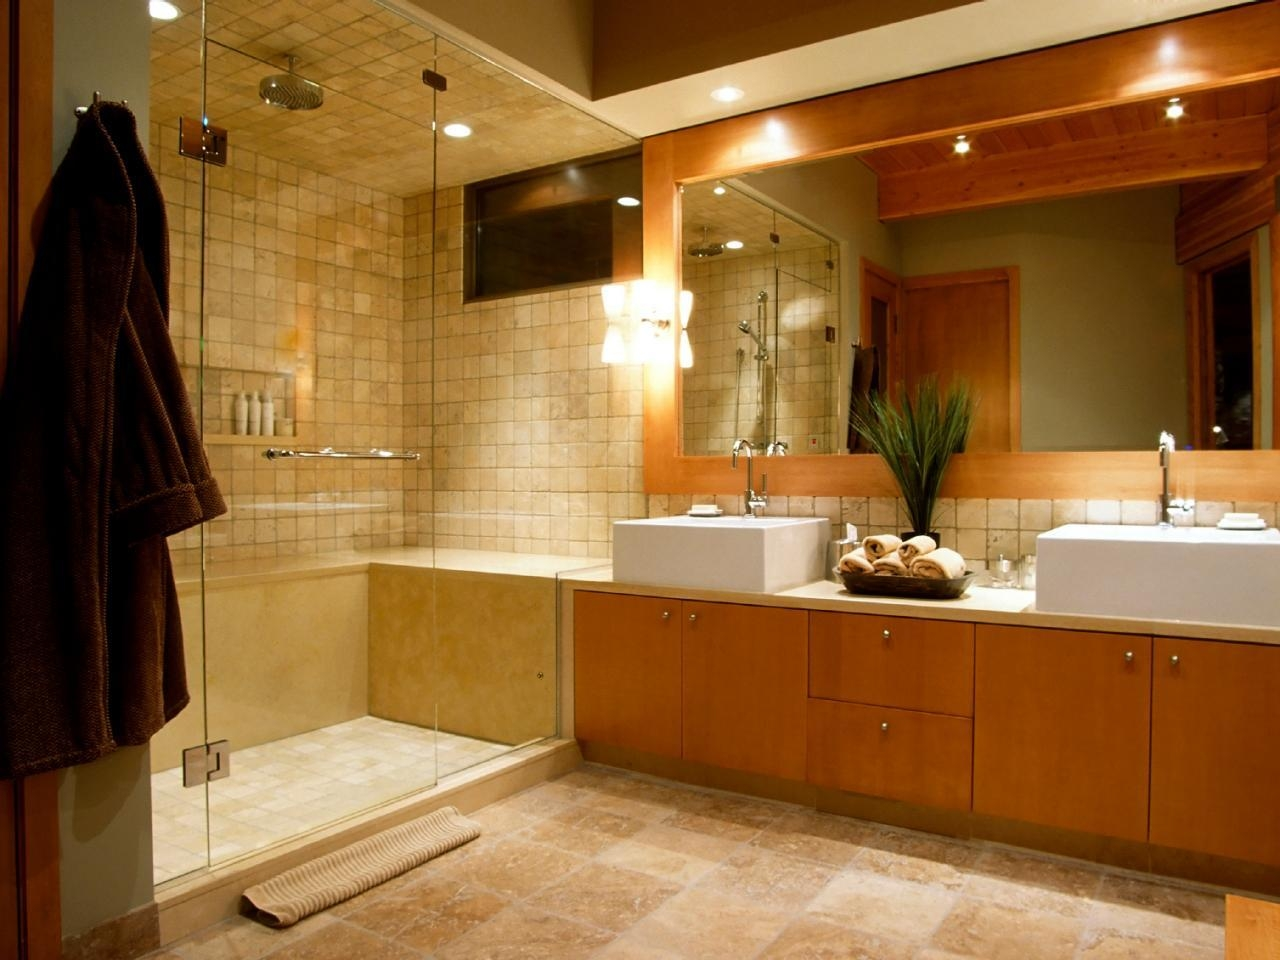 Bathroom Lighting | Hgtv Pertaining To Bathroom Lights And Mirrors (Image 6 of 20)